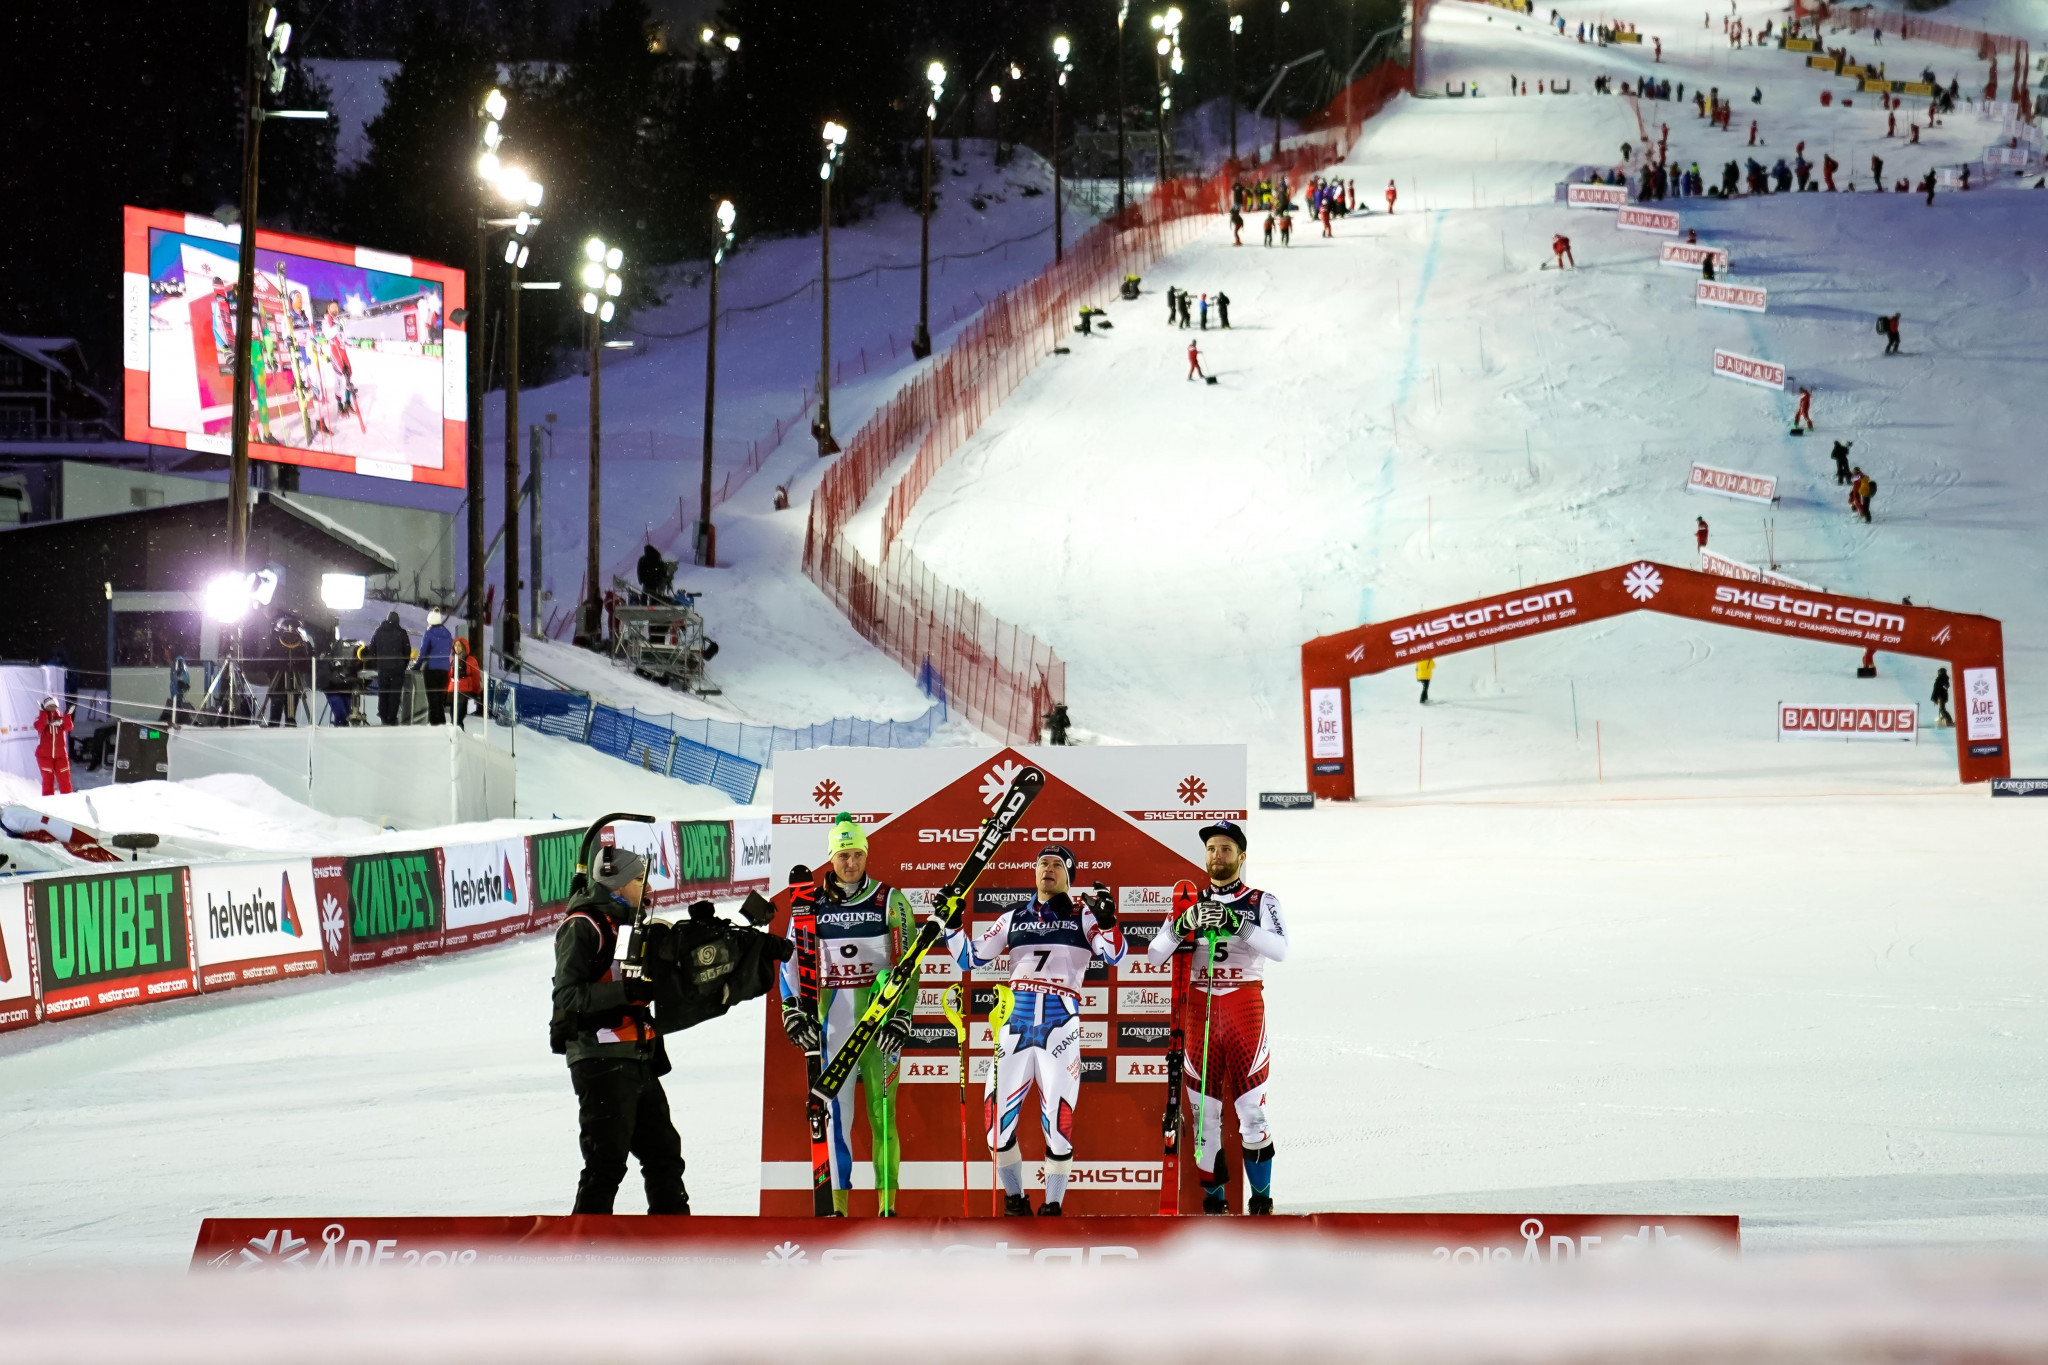 A ceremony took place at the bottom of the competition slope ©Getty Images